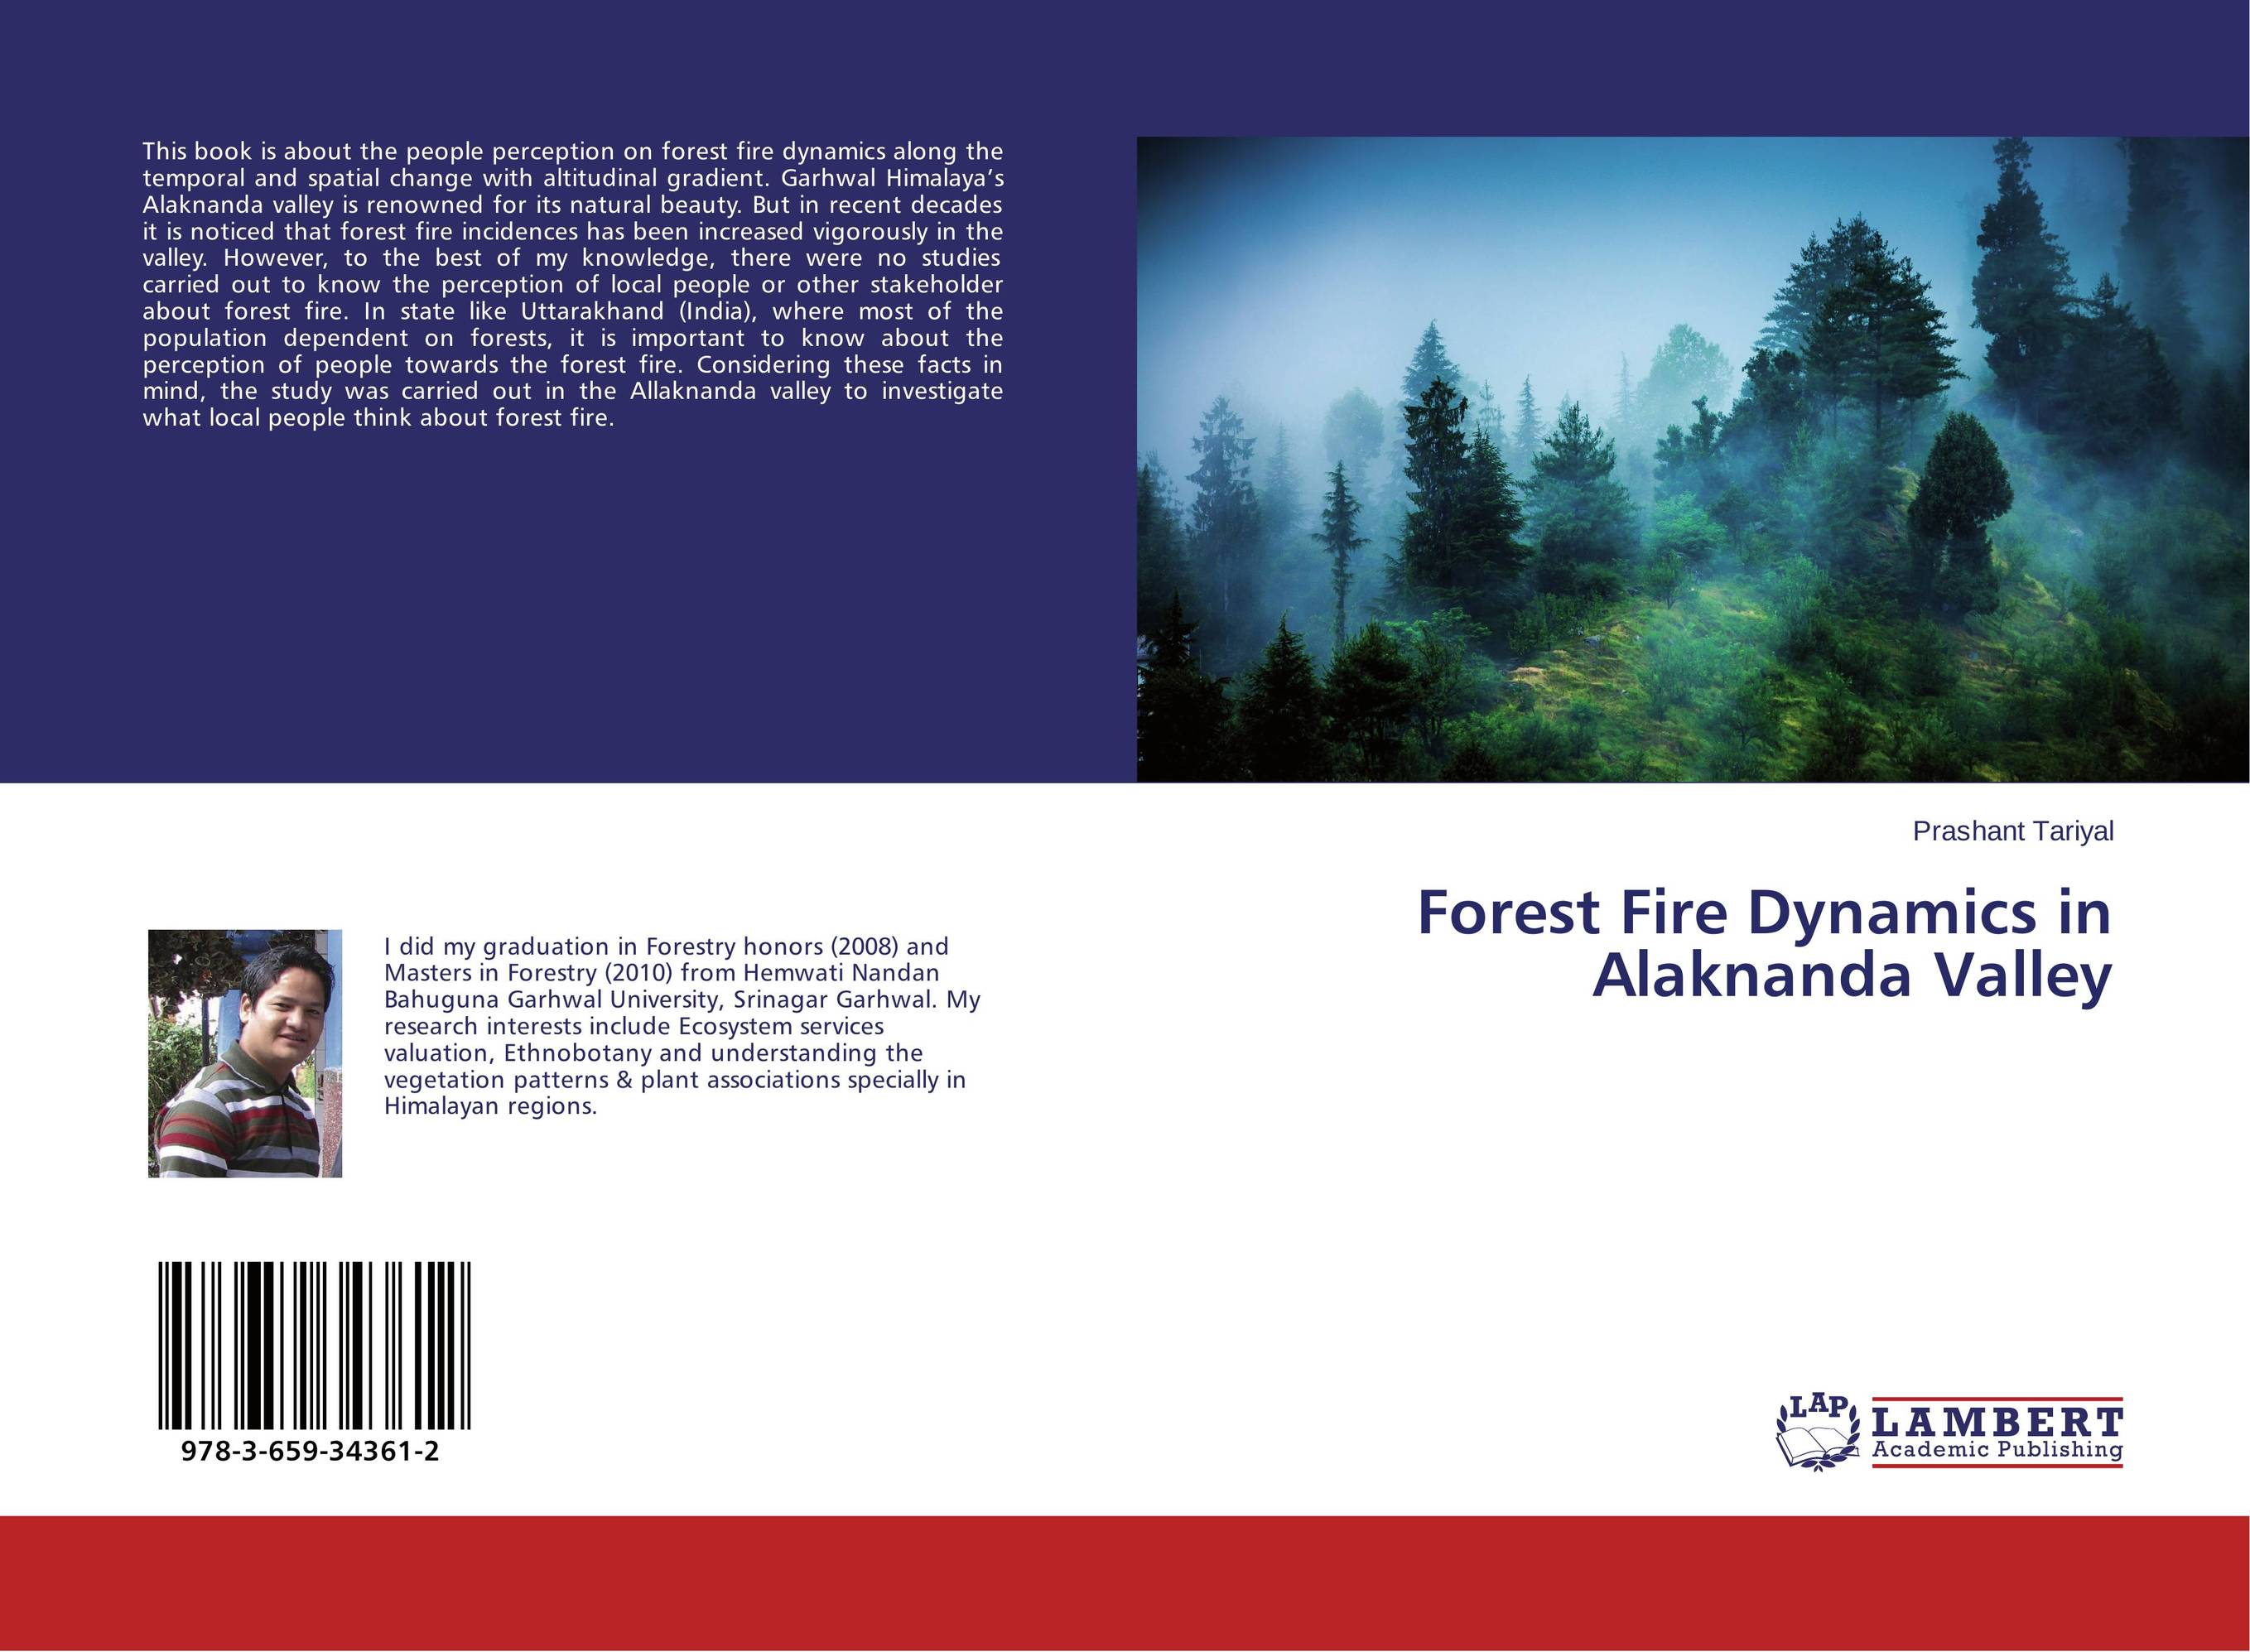 Forest Fire Dynamics in Alaknanda Valley a study on the perception of forests right adhere